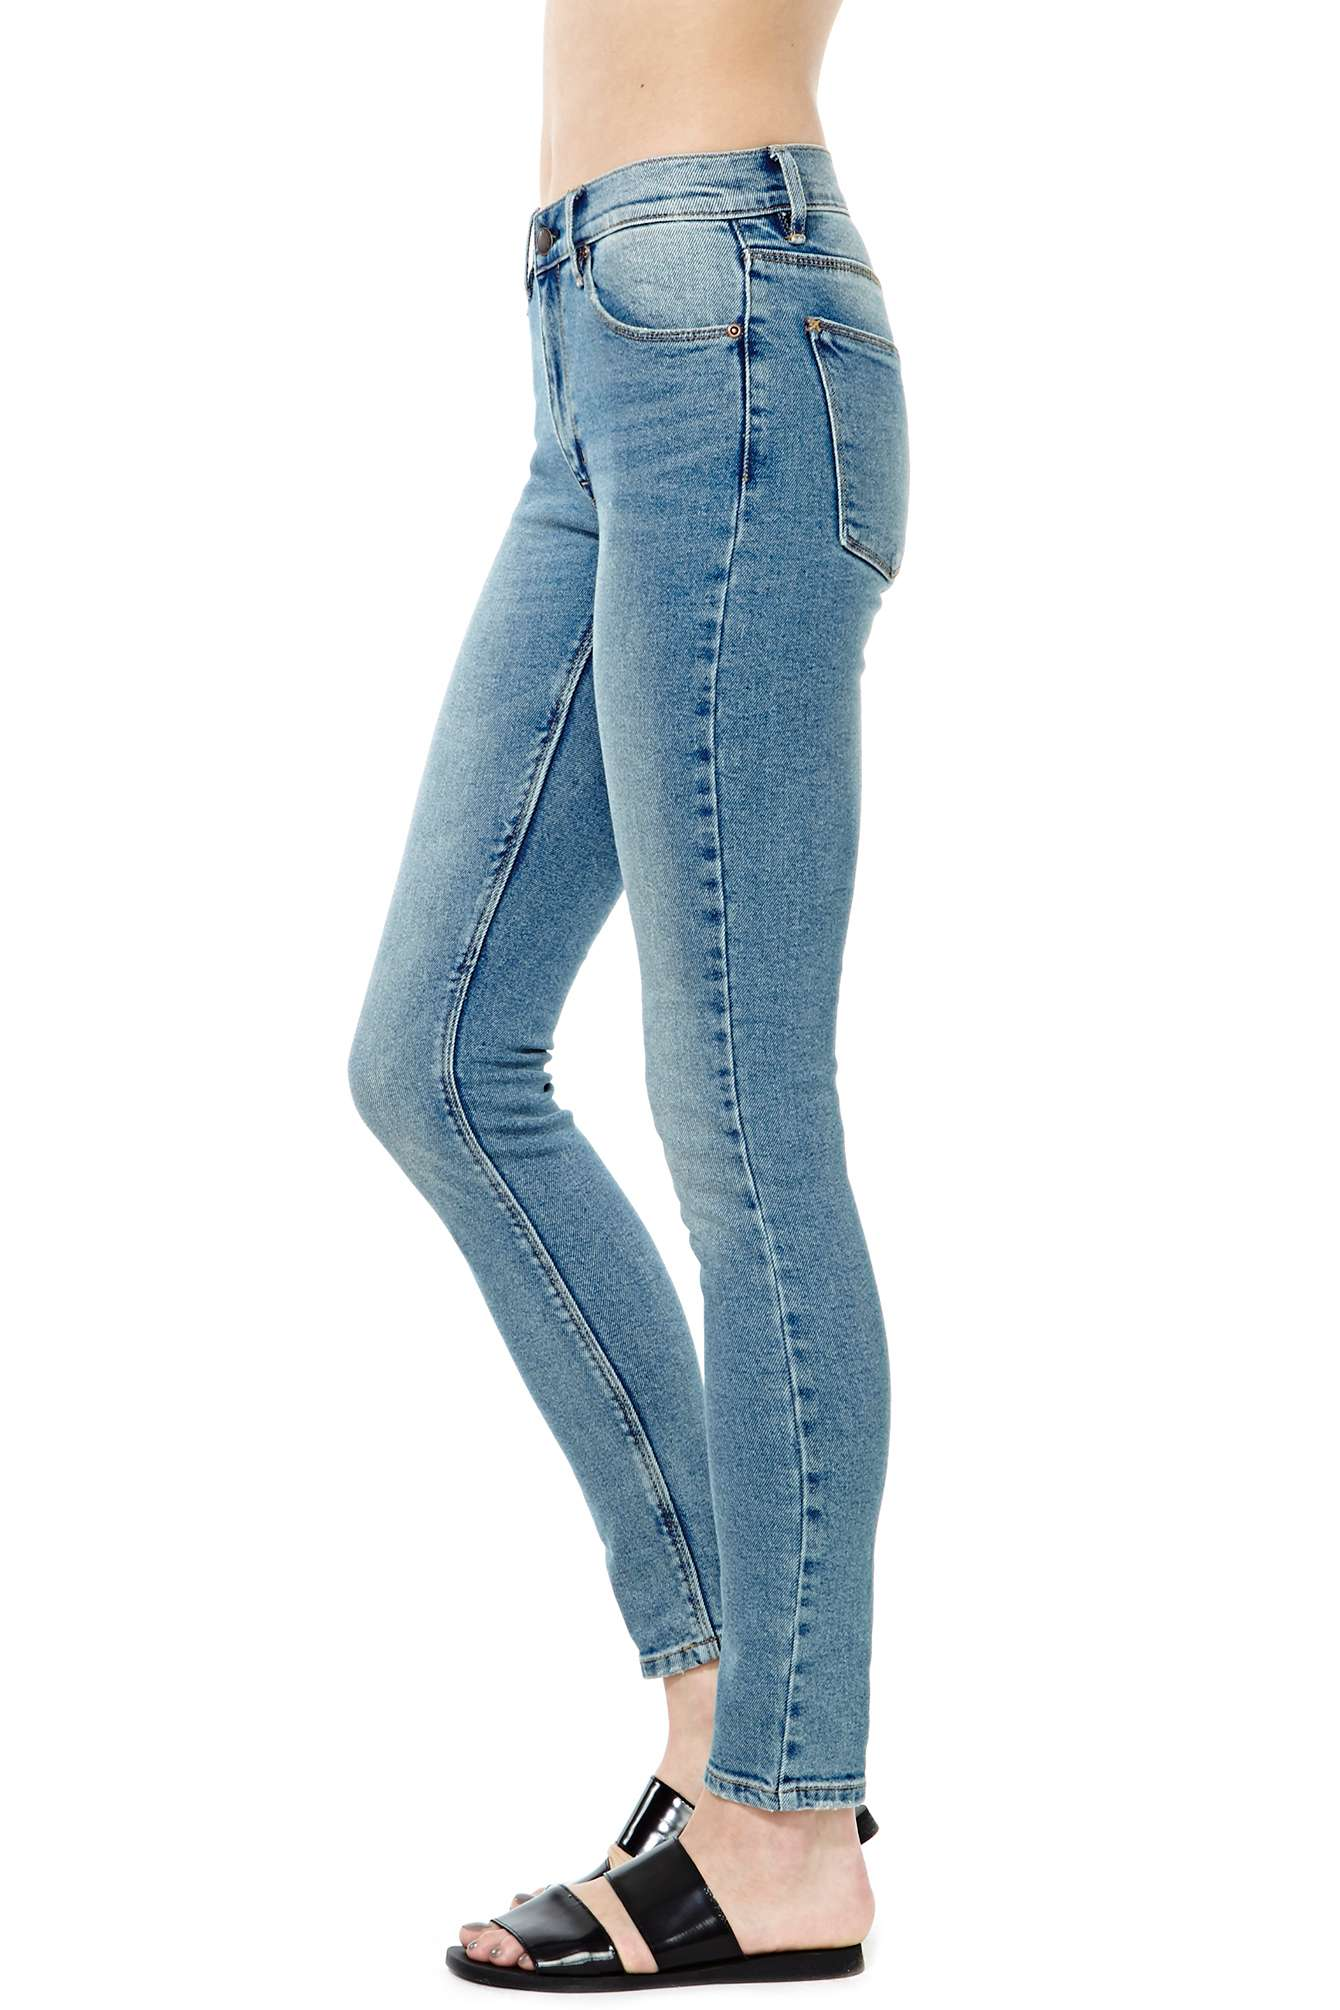 Res kitty skinny jeans